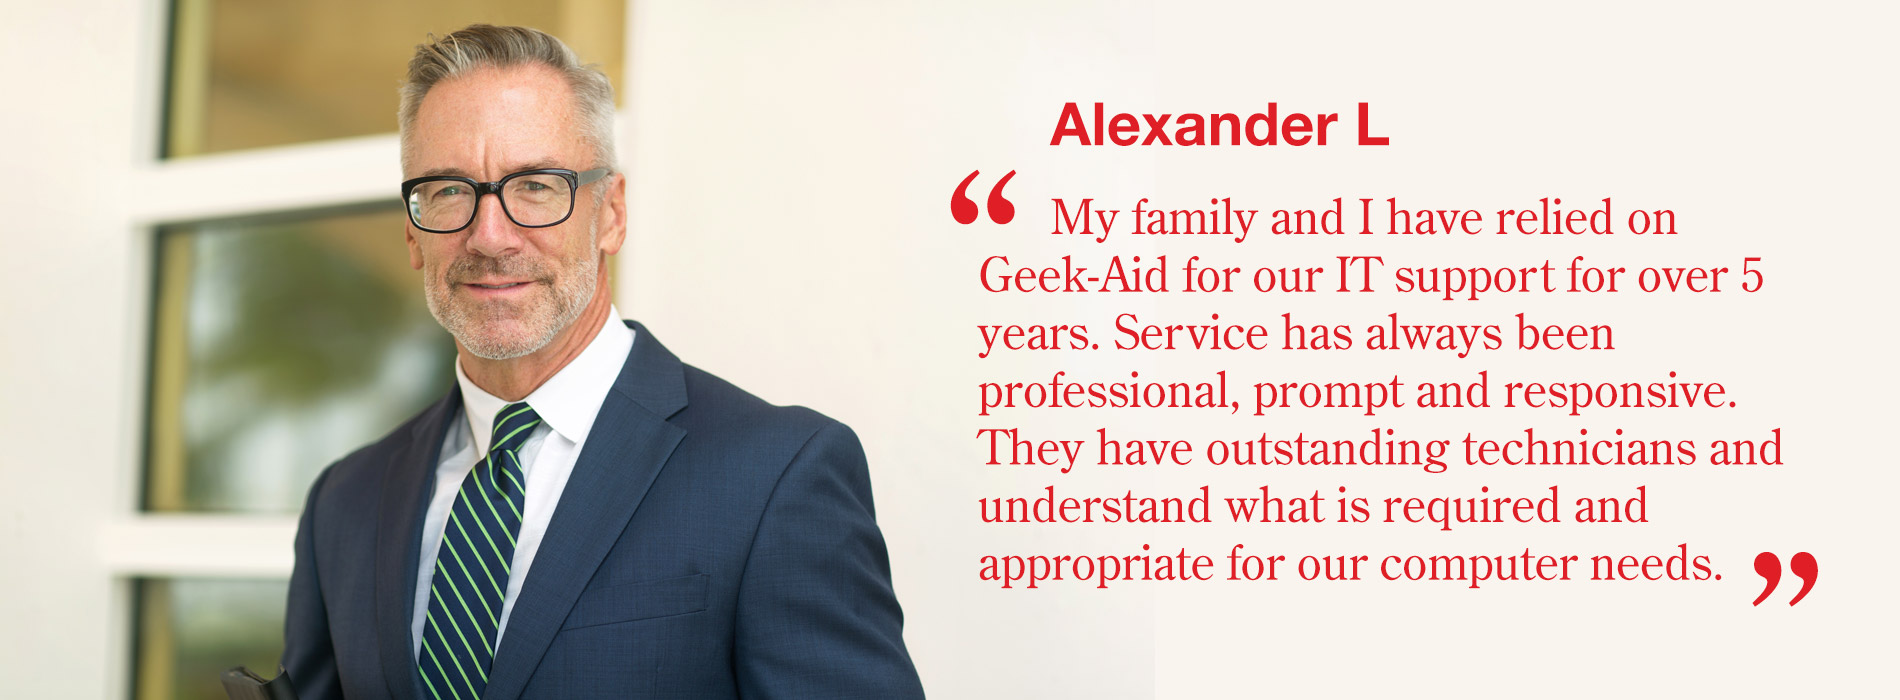 Alexander L - My family and I have relied on Geek-Aid for our IT support for over 5 years. Service has always been professional, prompt and responsive. They have outstanding technicians and understand what is required and appropriate for our computer needs.